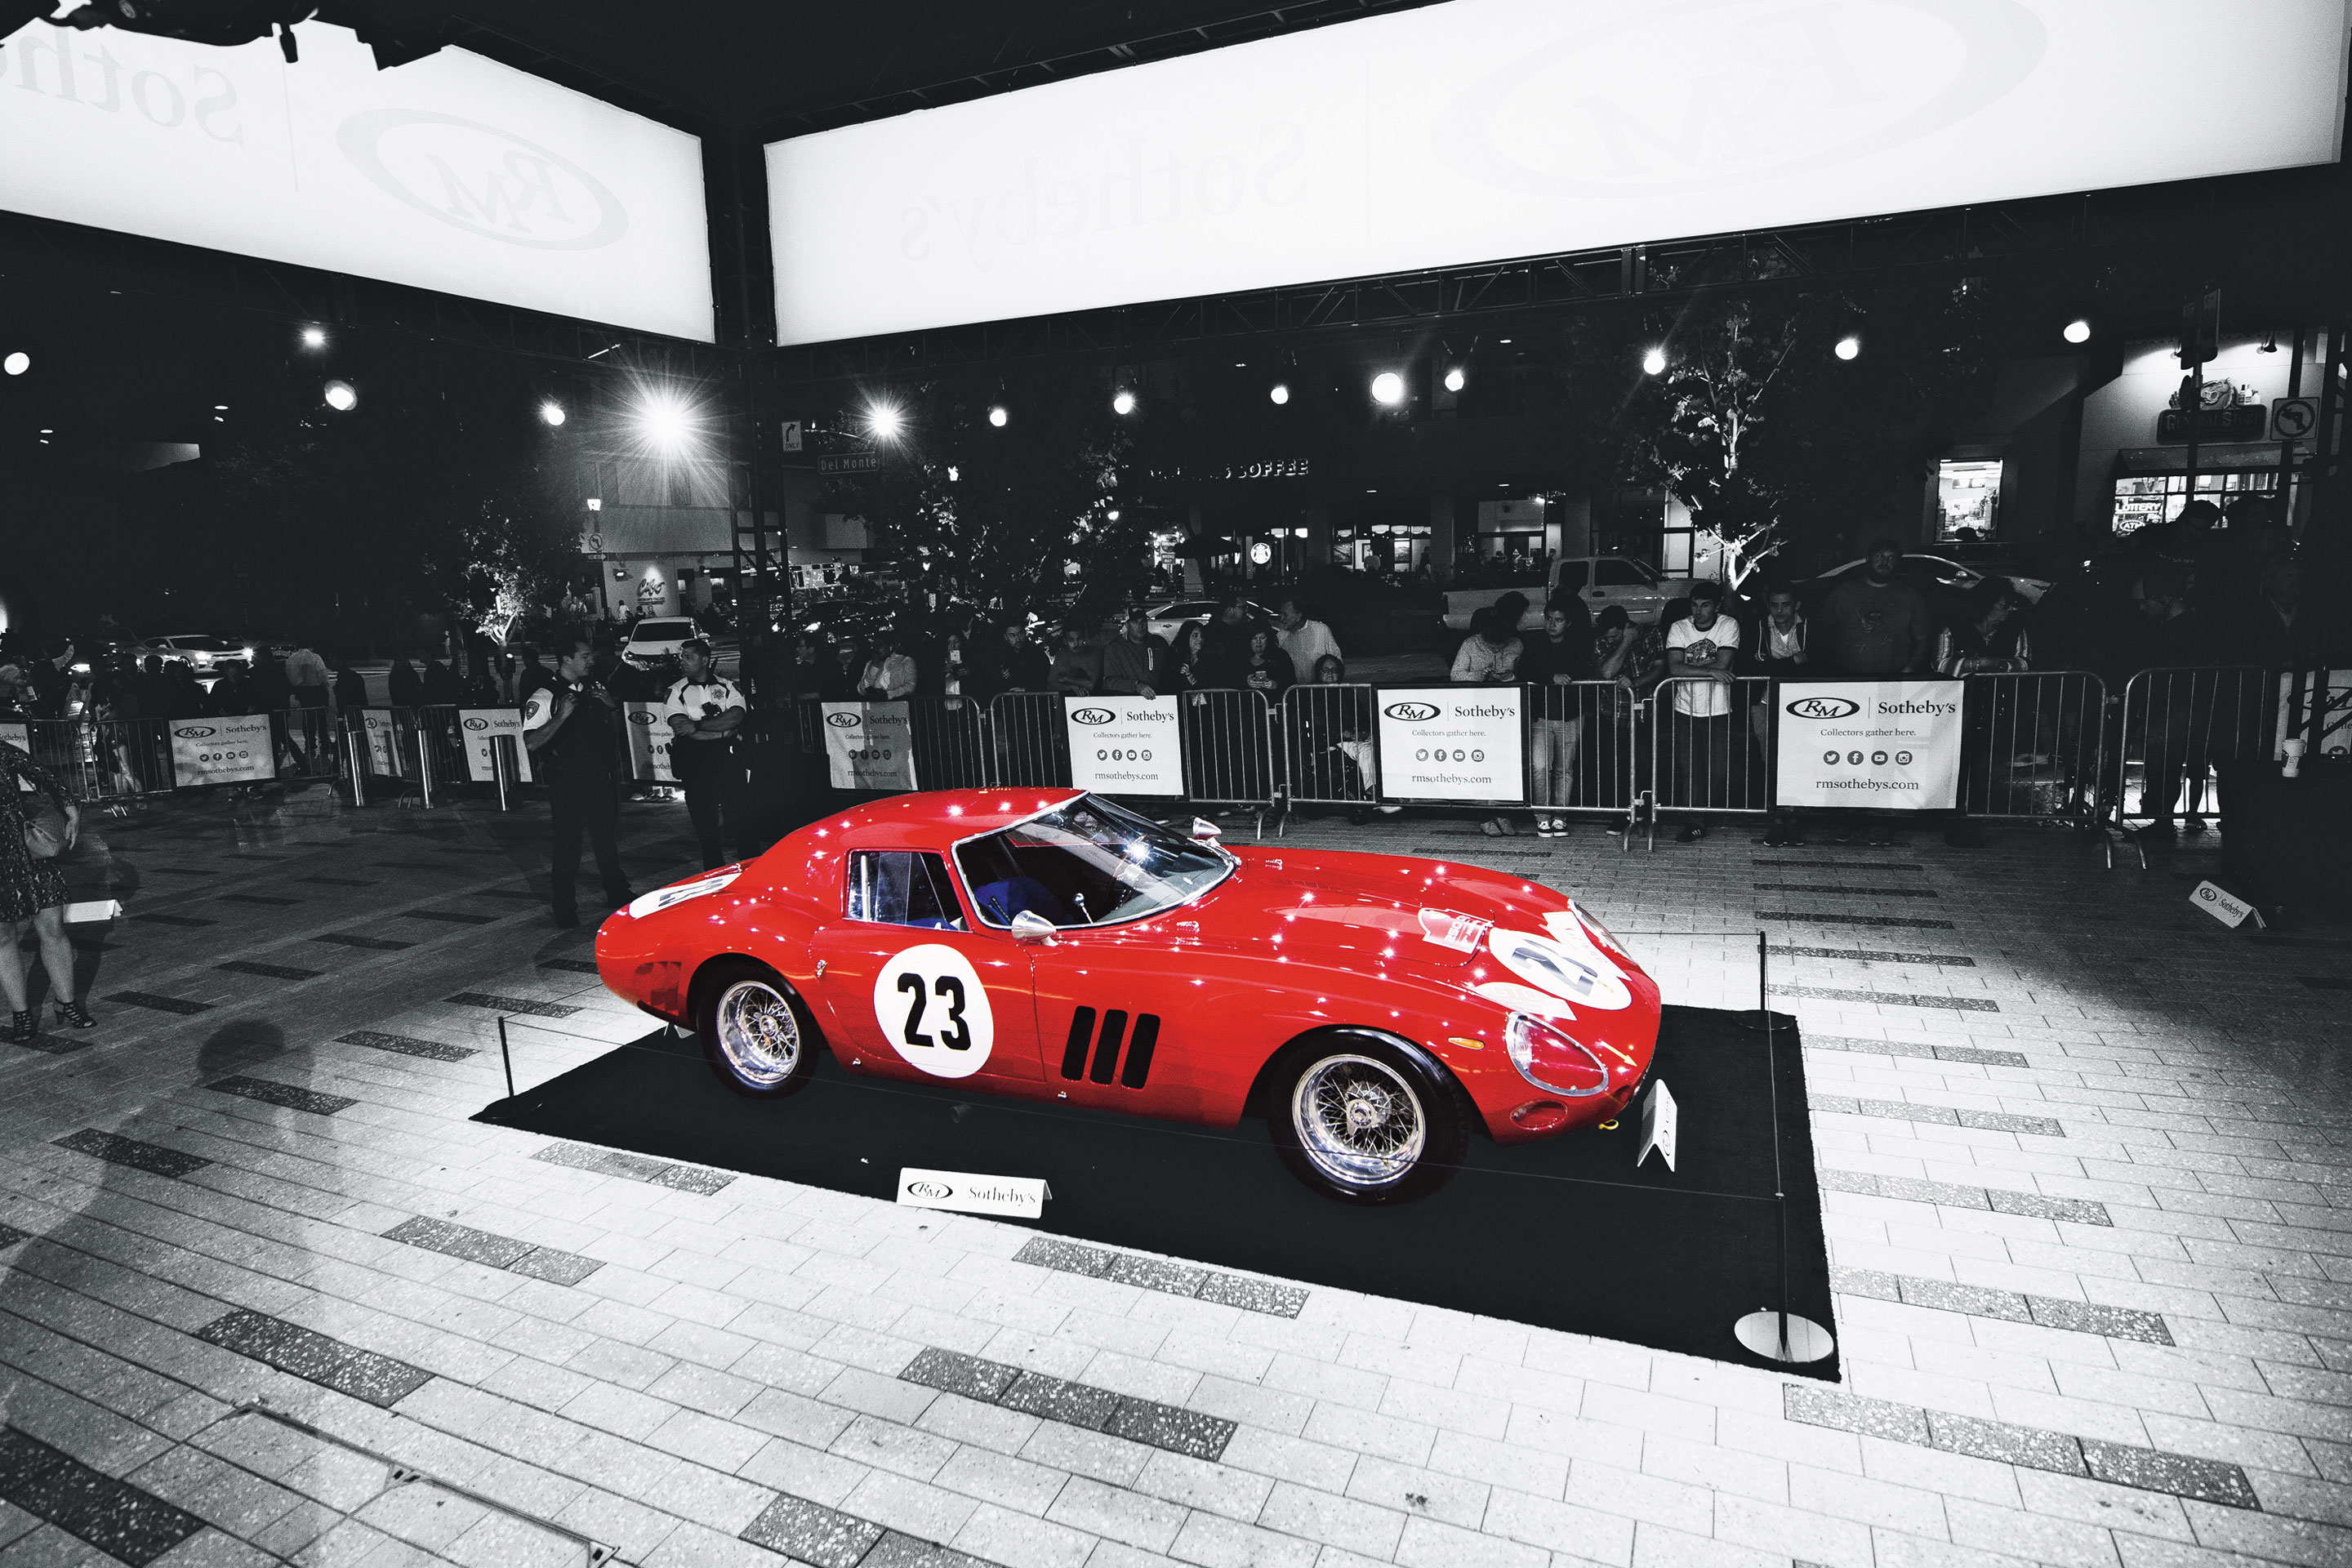 1962 Ferrari 250 GTO  SOLD for $48.4 million